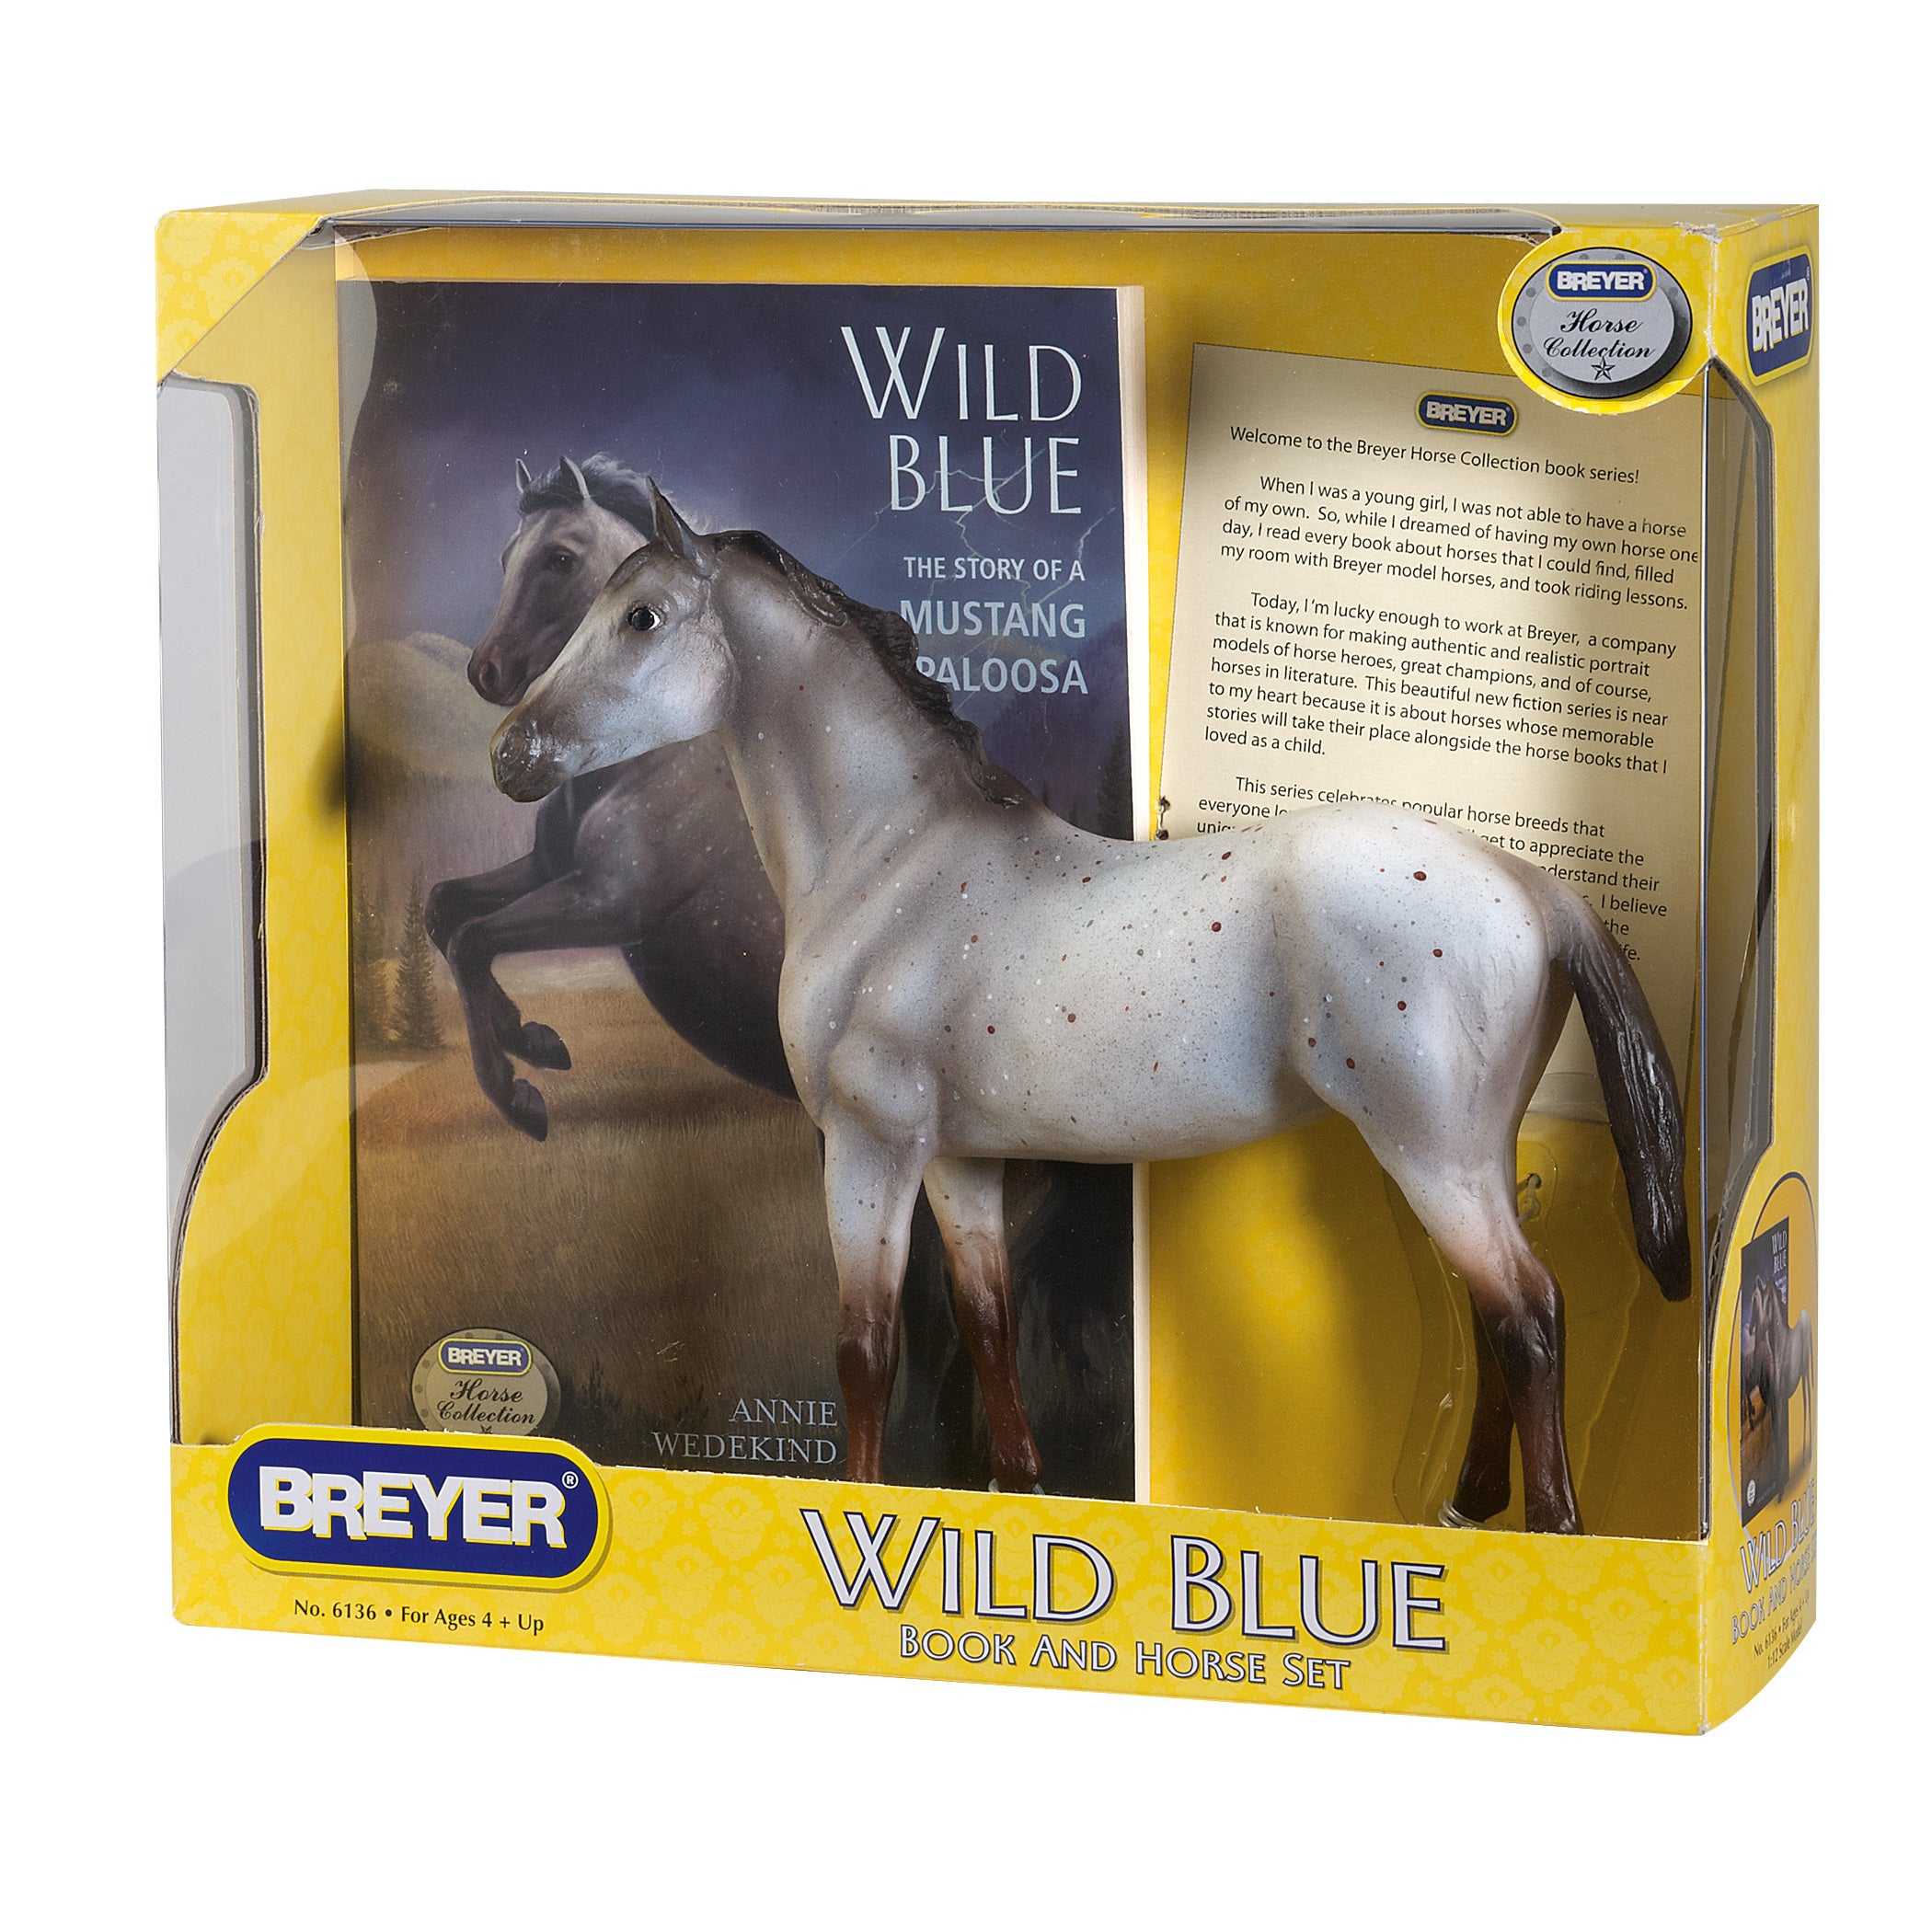 Breyer Horse Figurine And Book Set Wild Blue Overstock 10612959